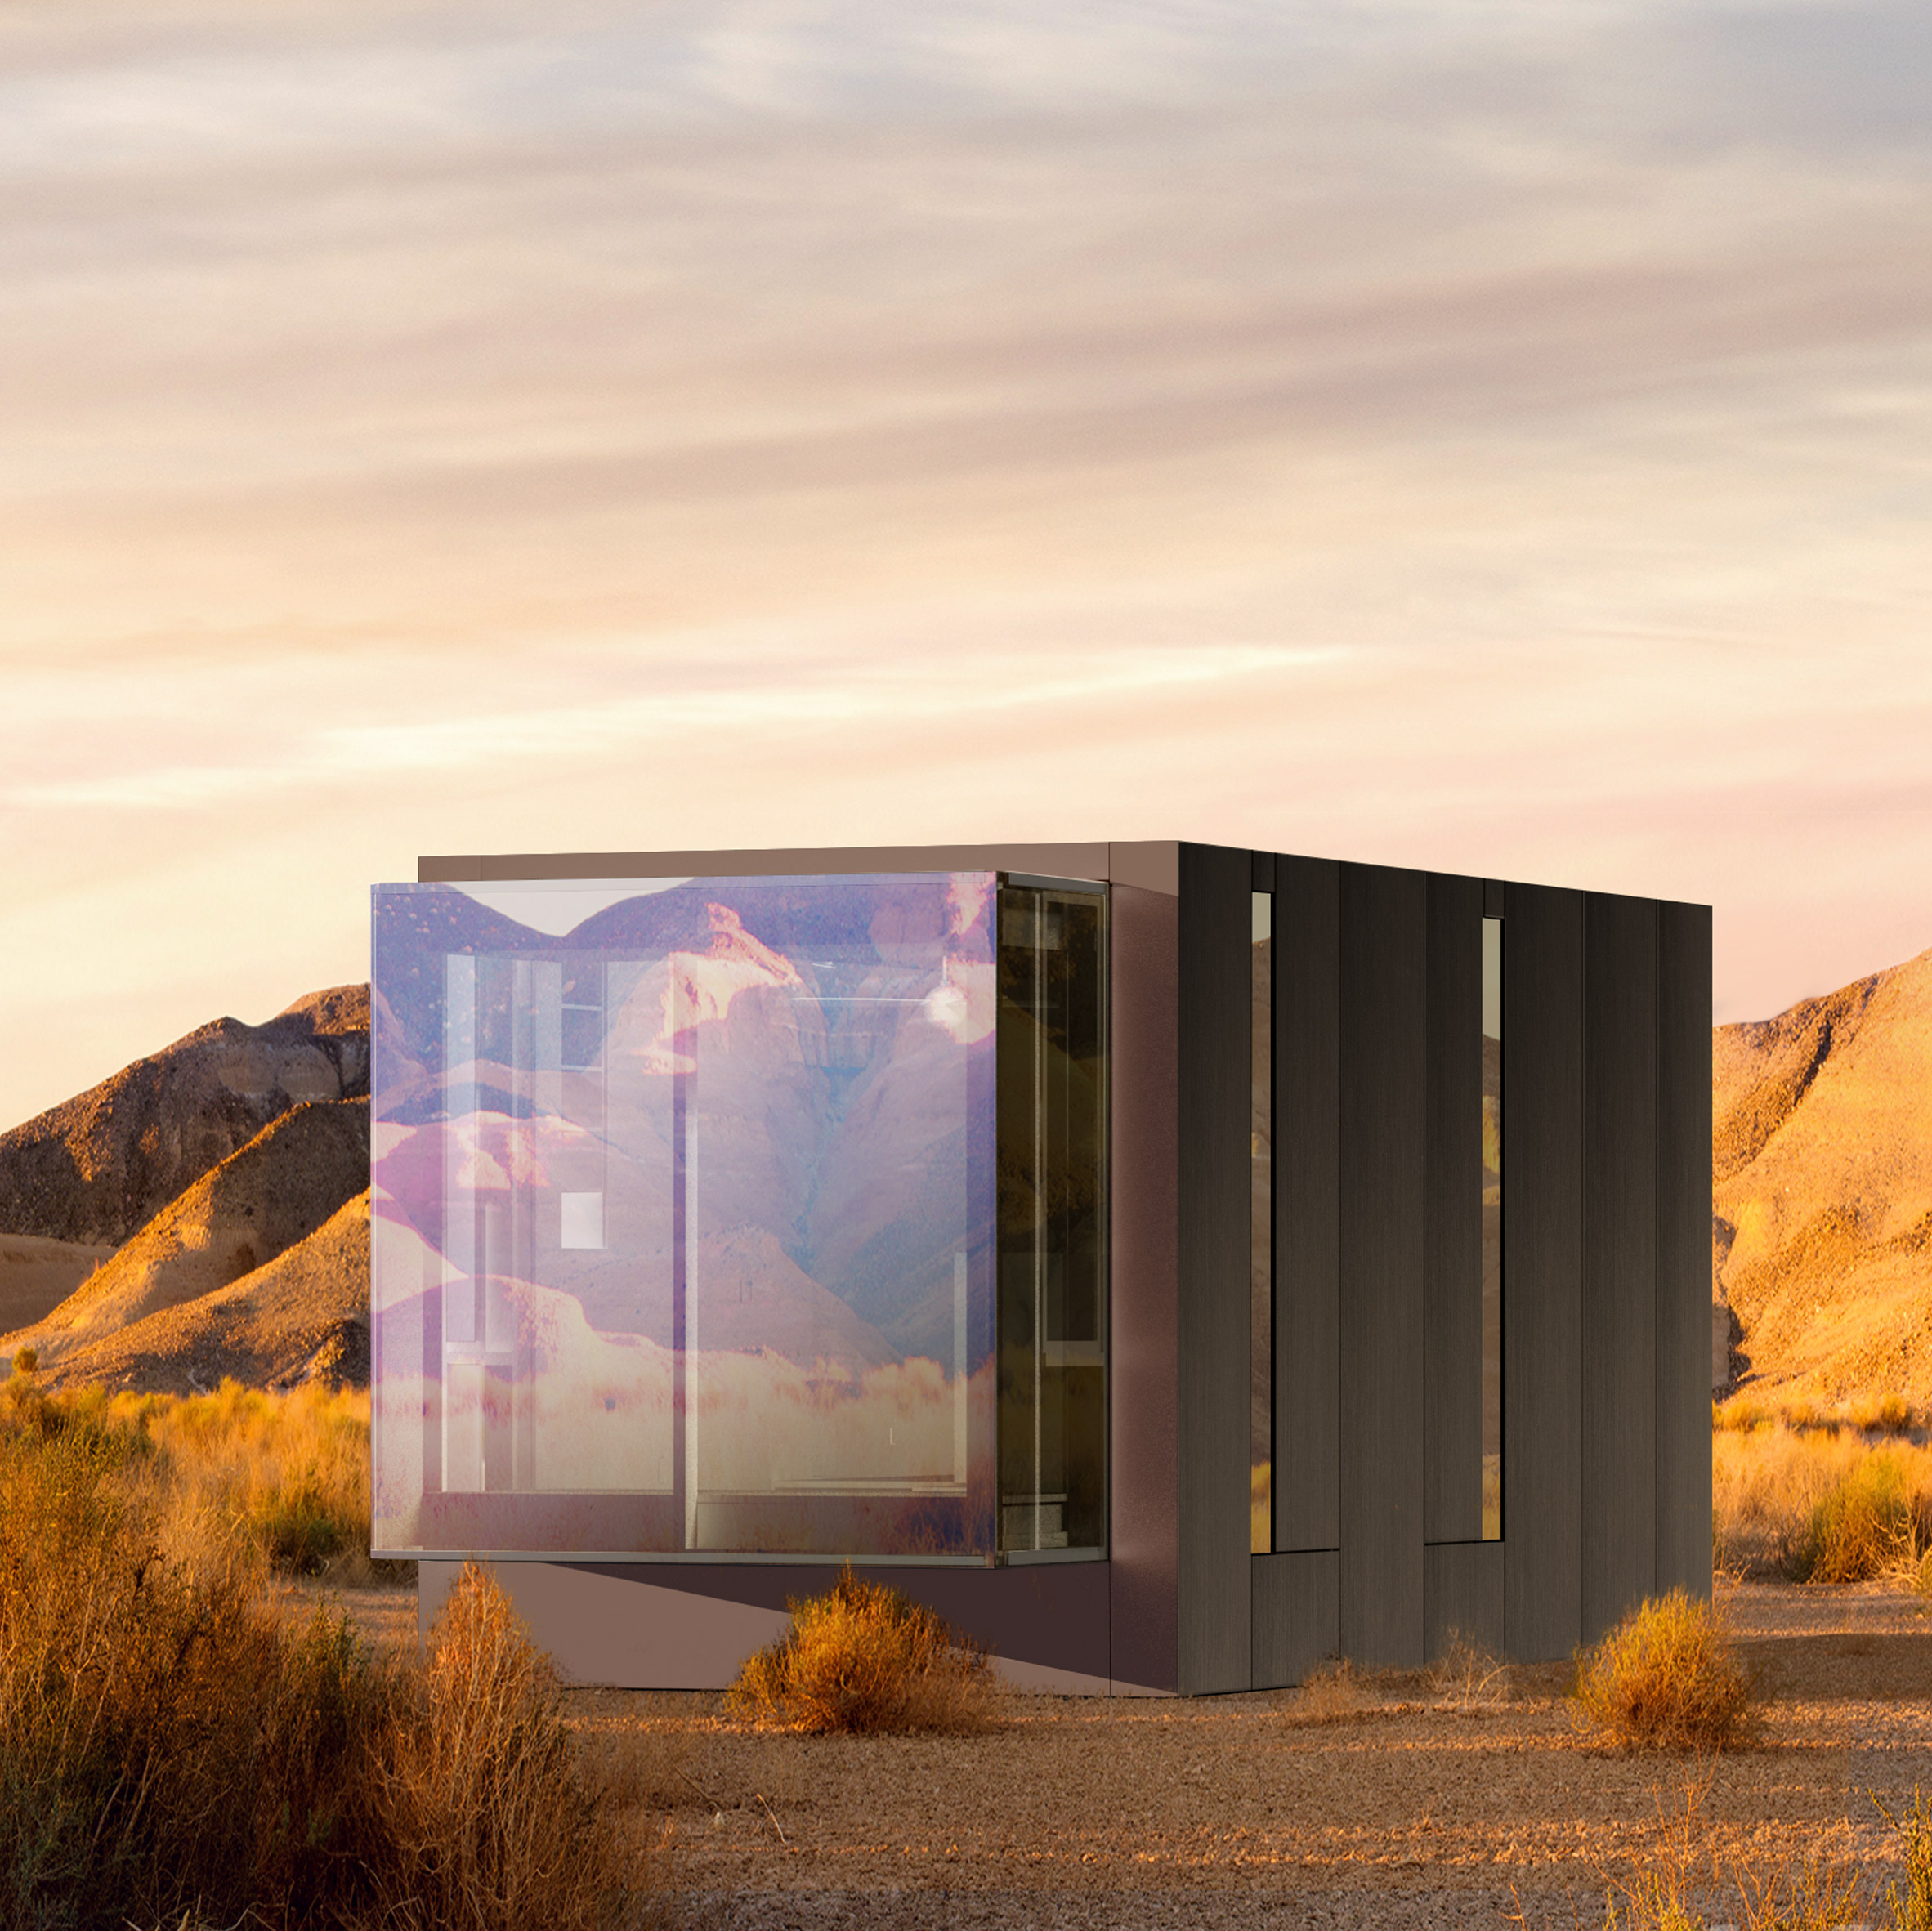 Kasita launches sales of high-tech micro dwellings at SXSW